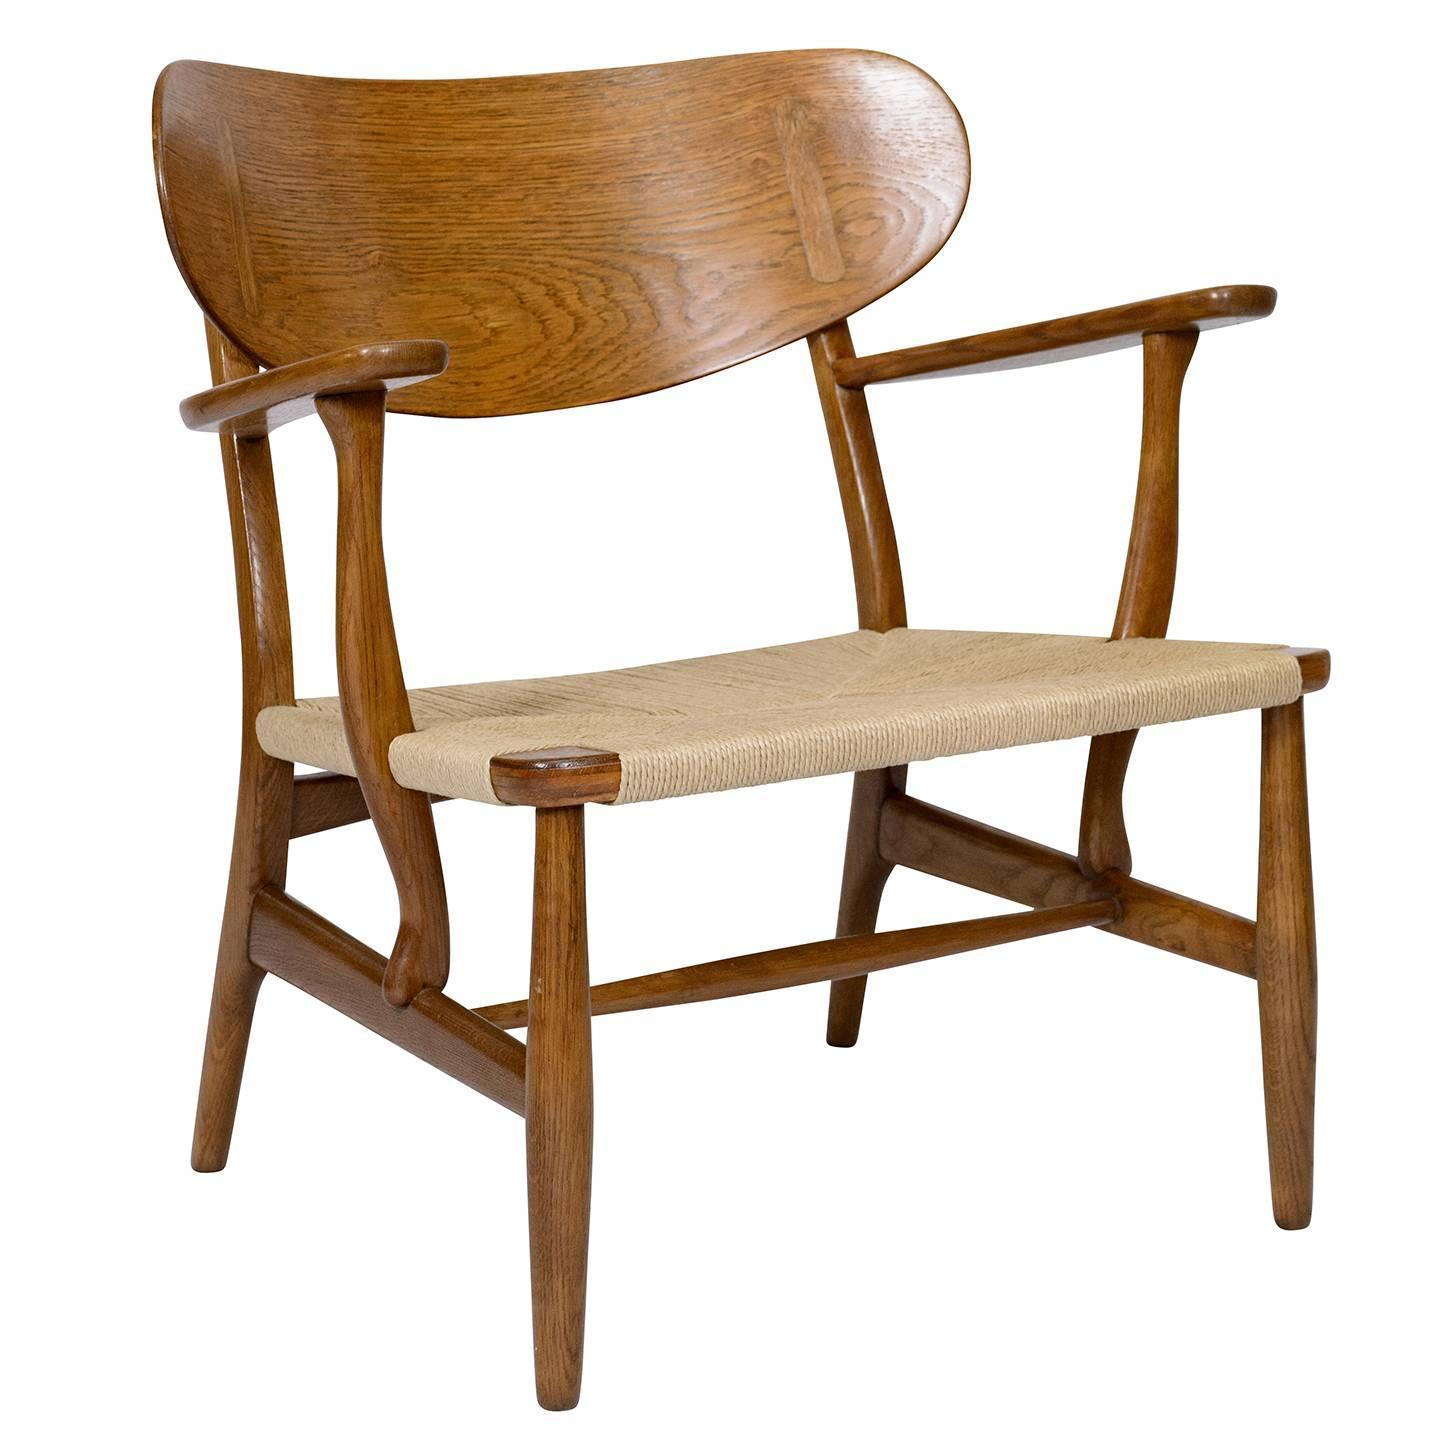 Hans Wegner CH 22 Lounge Chair For Sale at 1stdibs